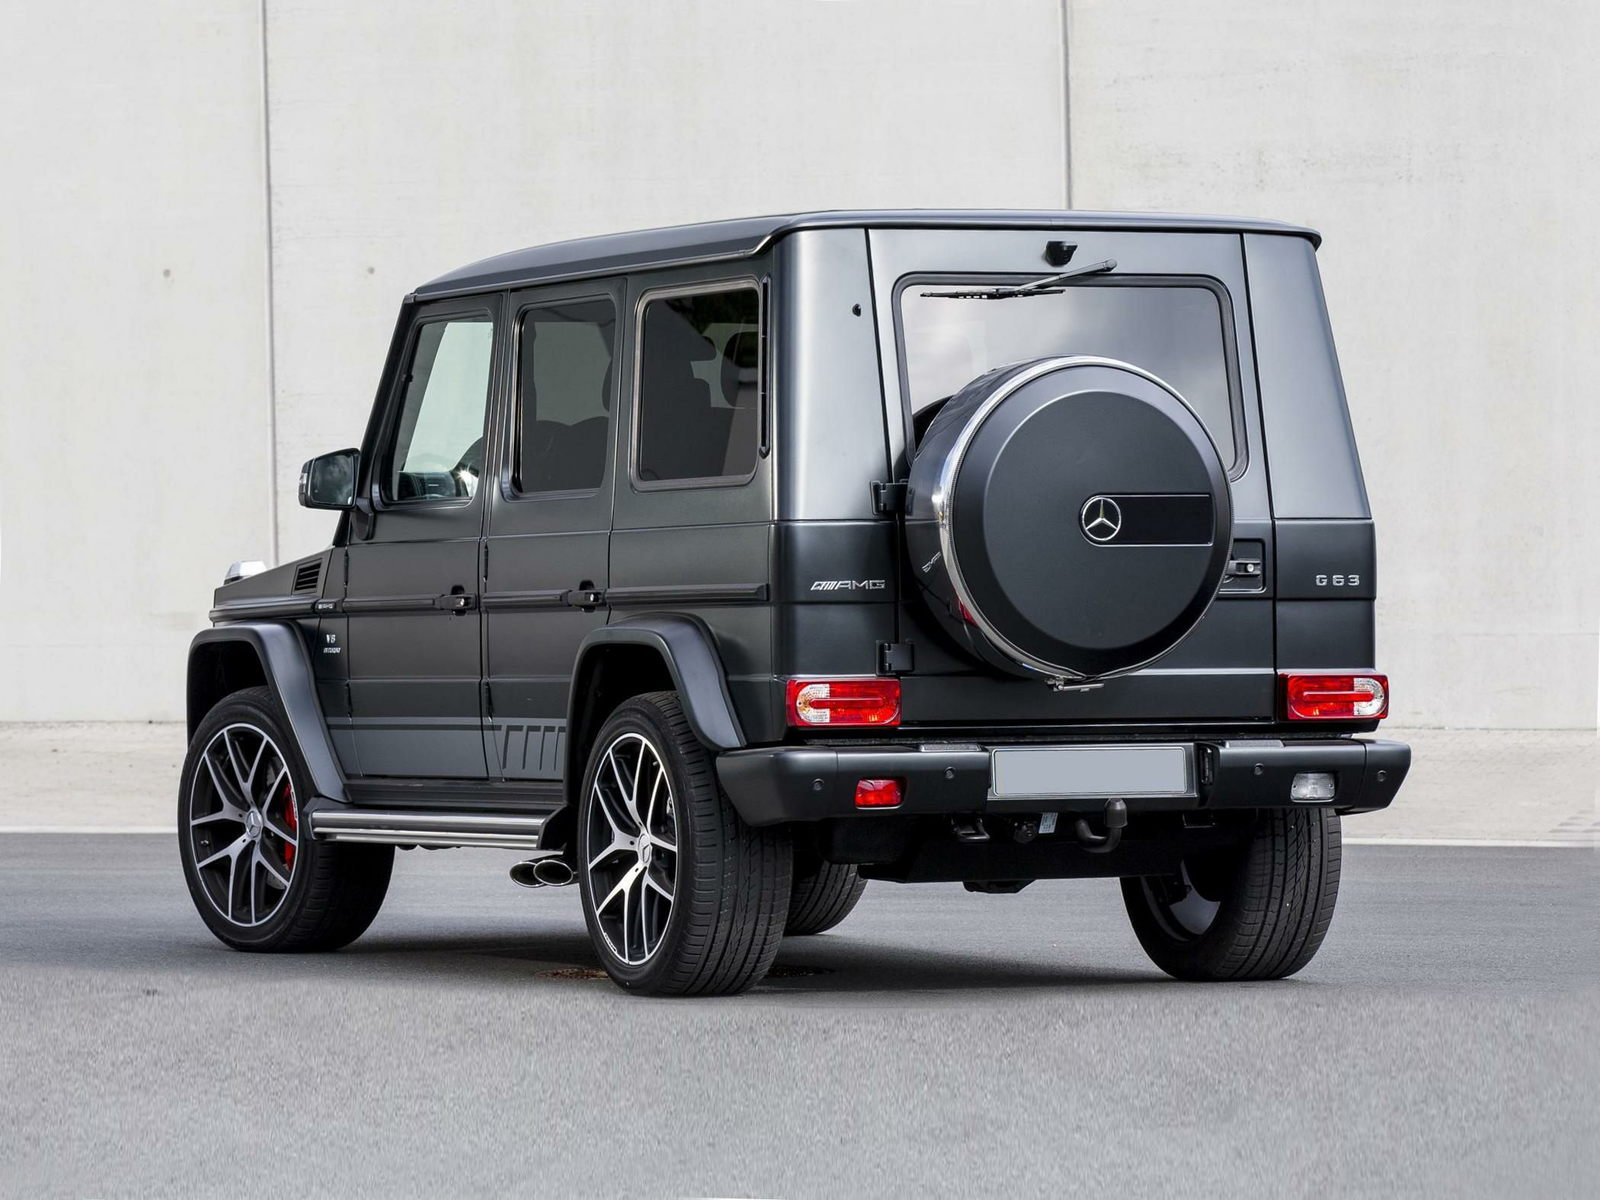 2016 mercedes benz g63 amg styles features highlights for G63 mercedes benz price